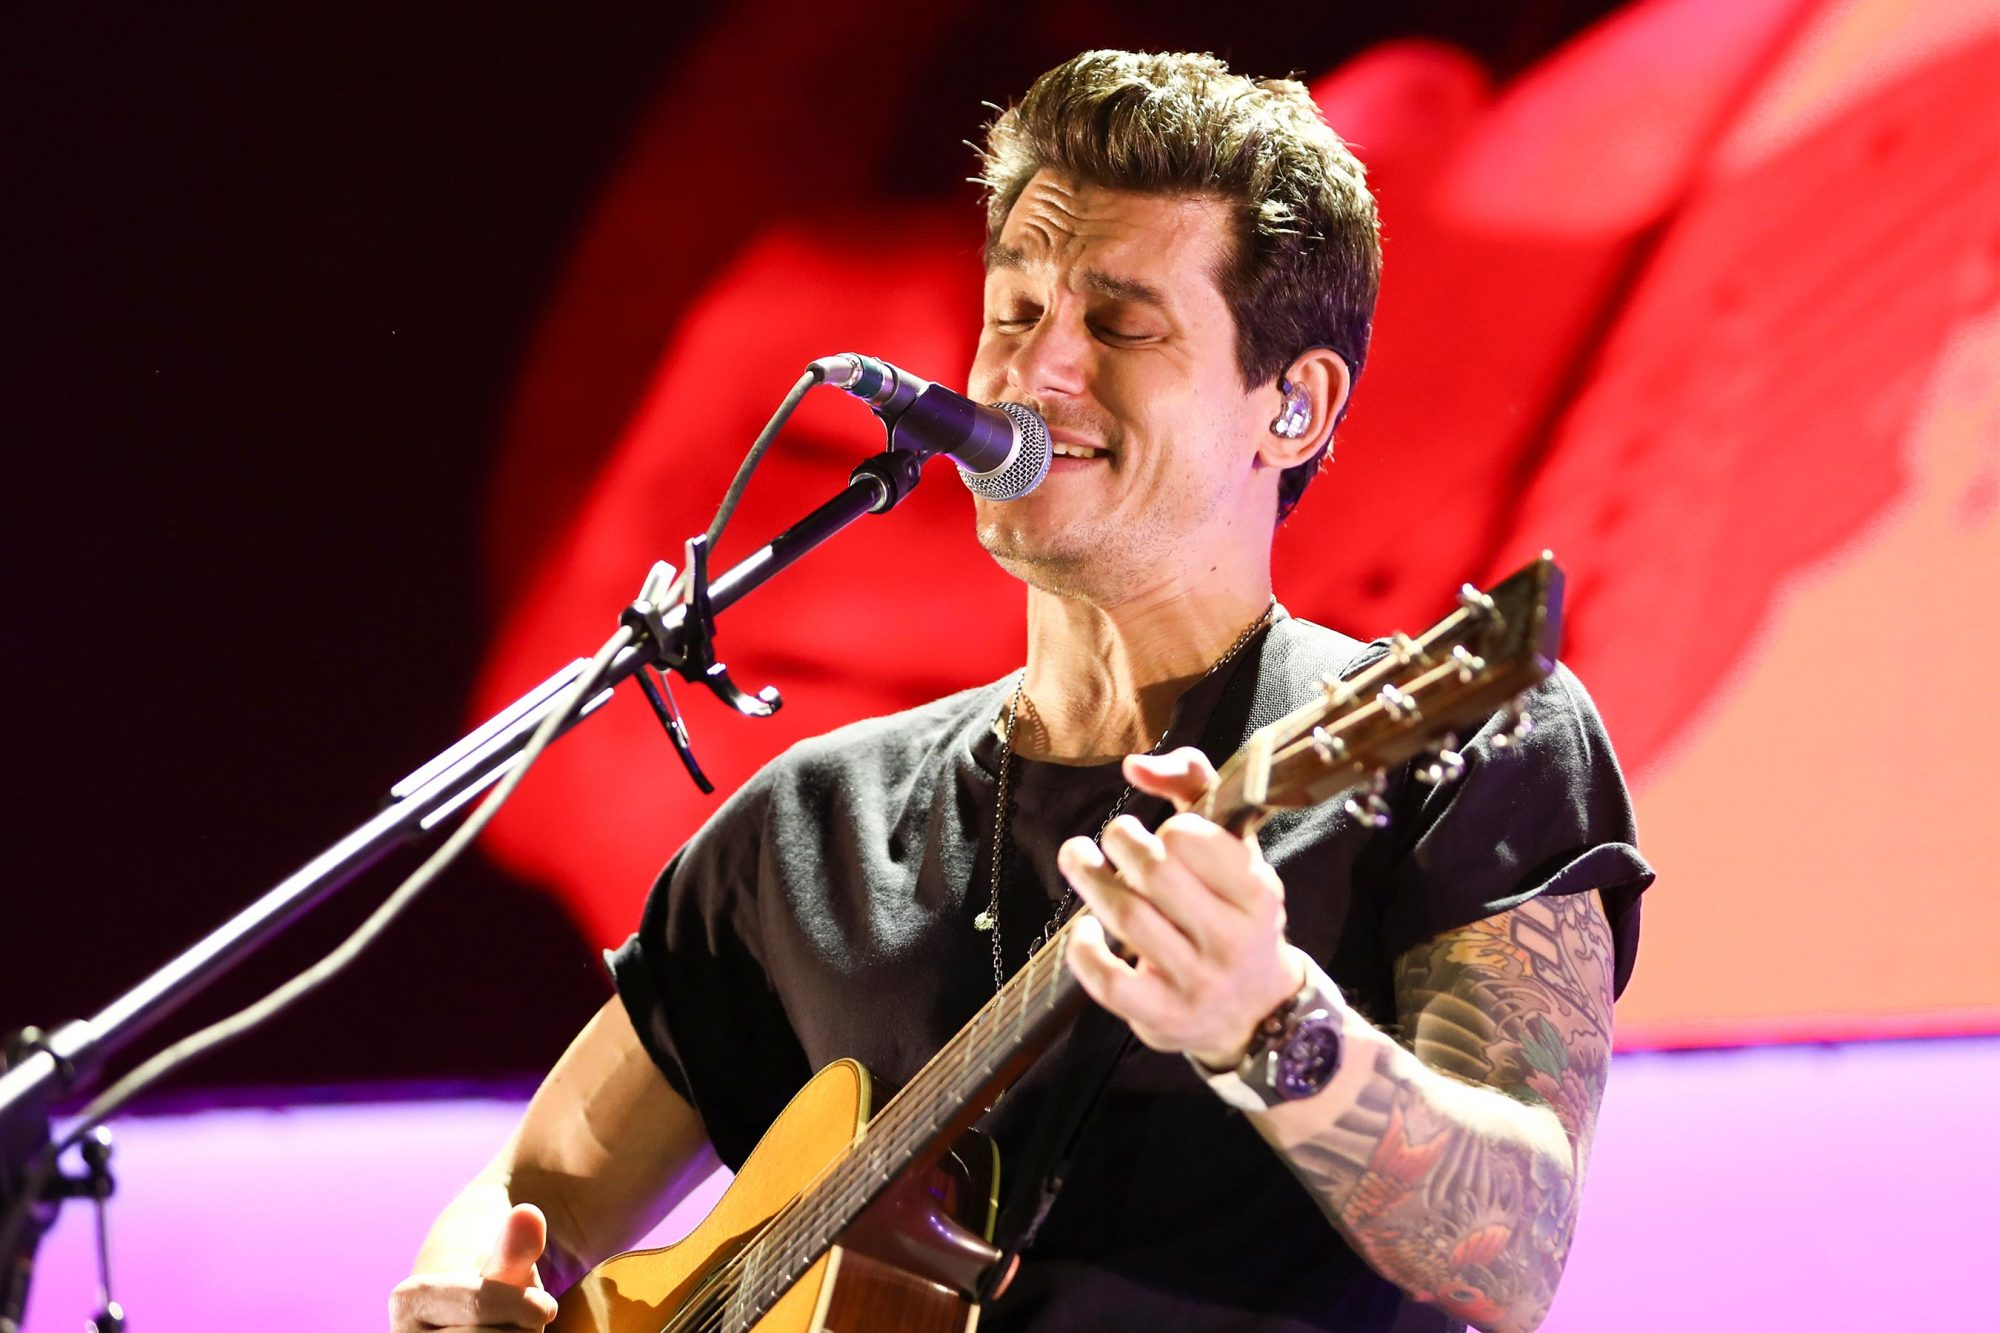 NASHVILLE, TENNESSEE - AUGUST 08: John Mayer performs onstage at Bridgestone Arena on August 08, 2019 in Nashville, Tennessee. (Photo by Leah Puttkammer/Getty Images)